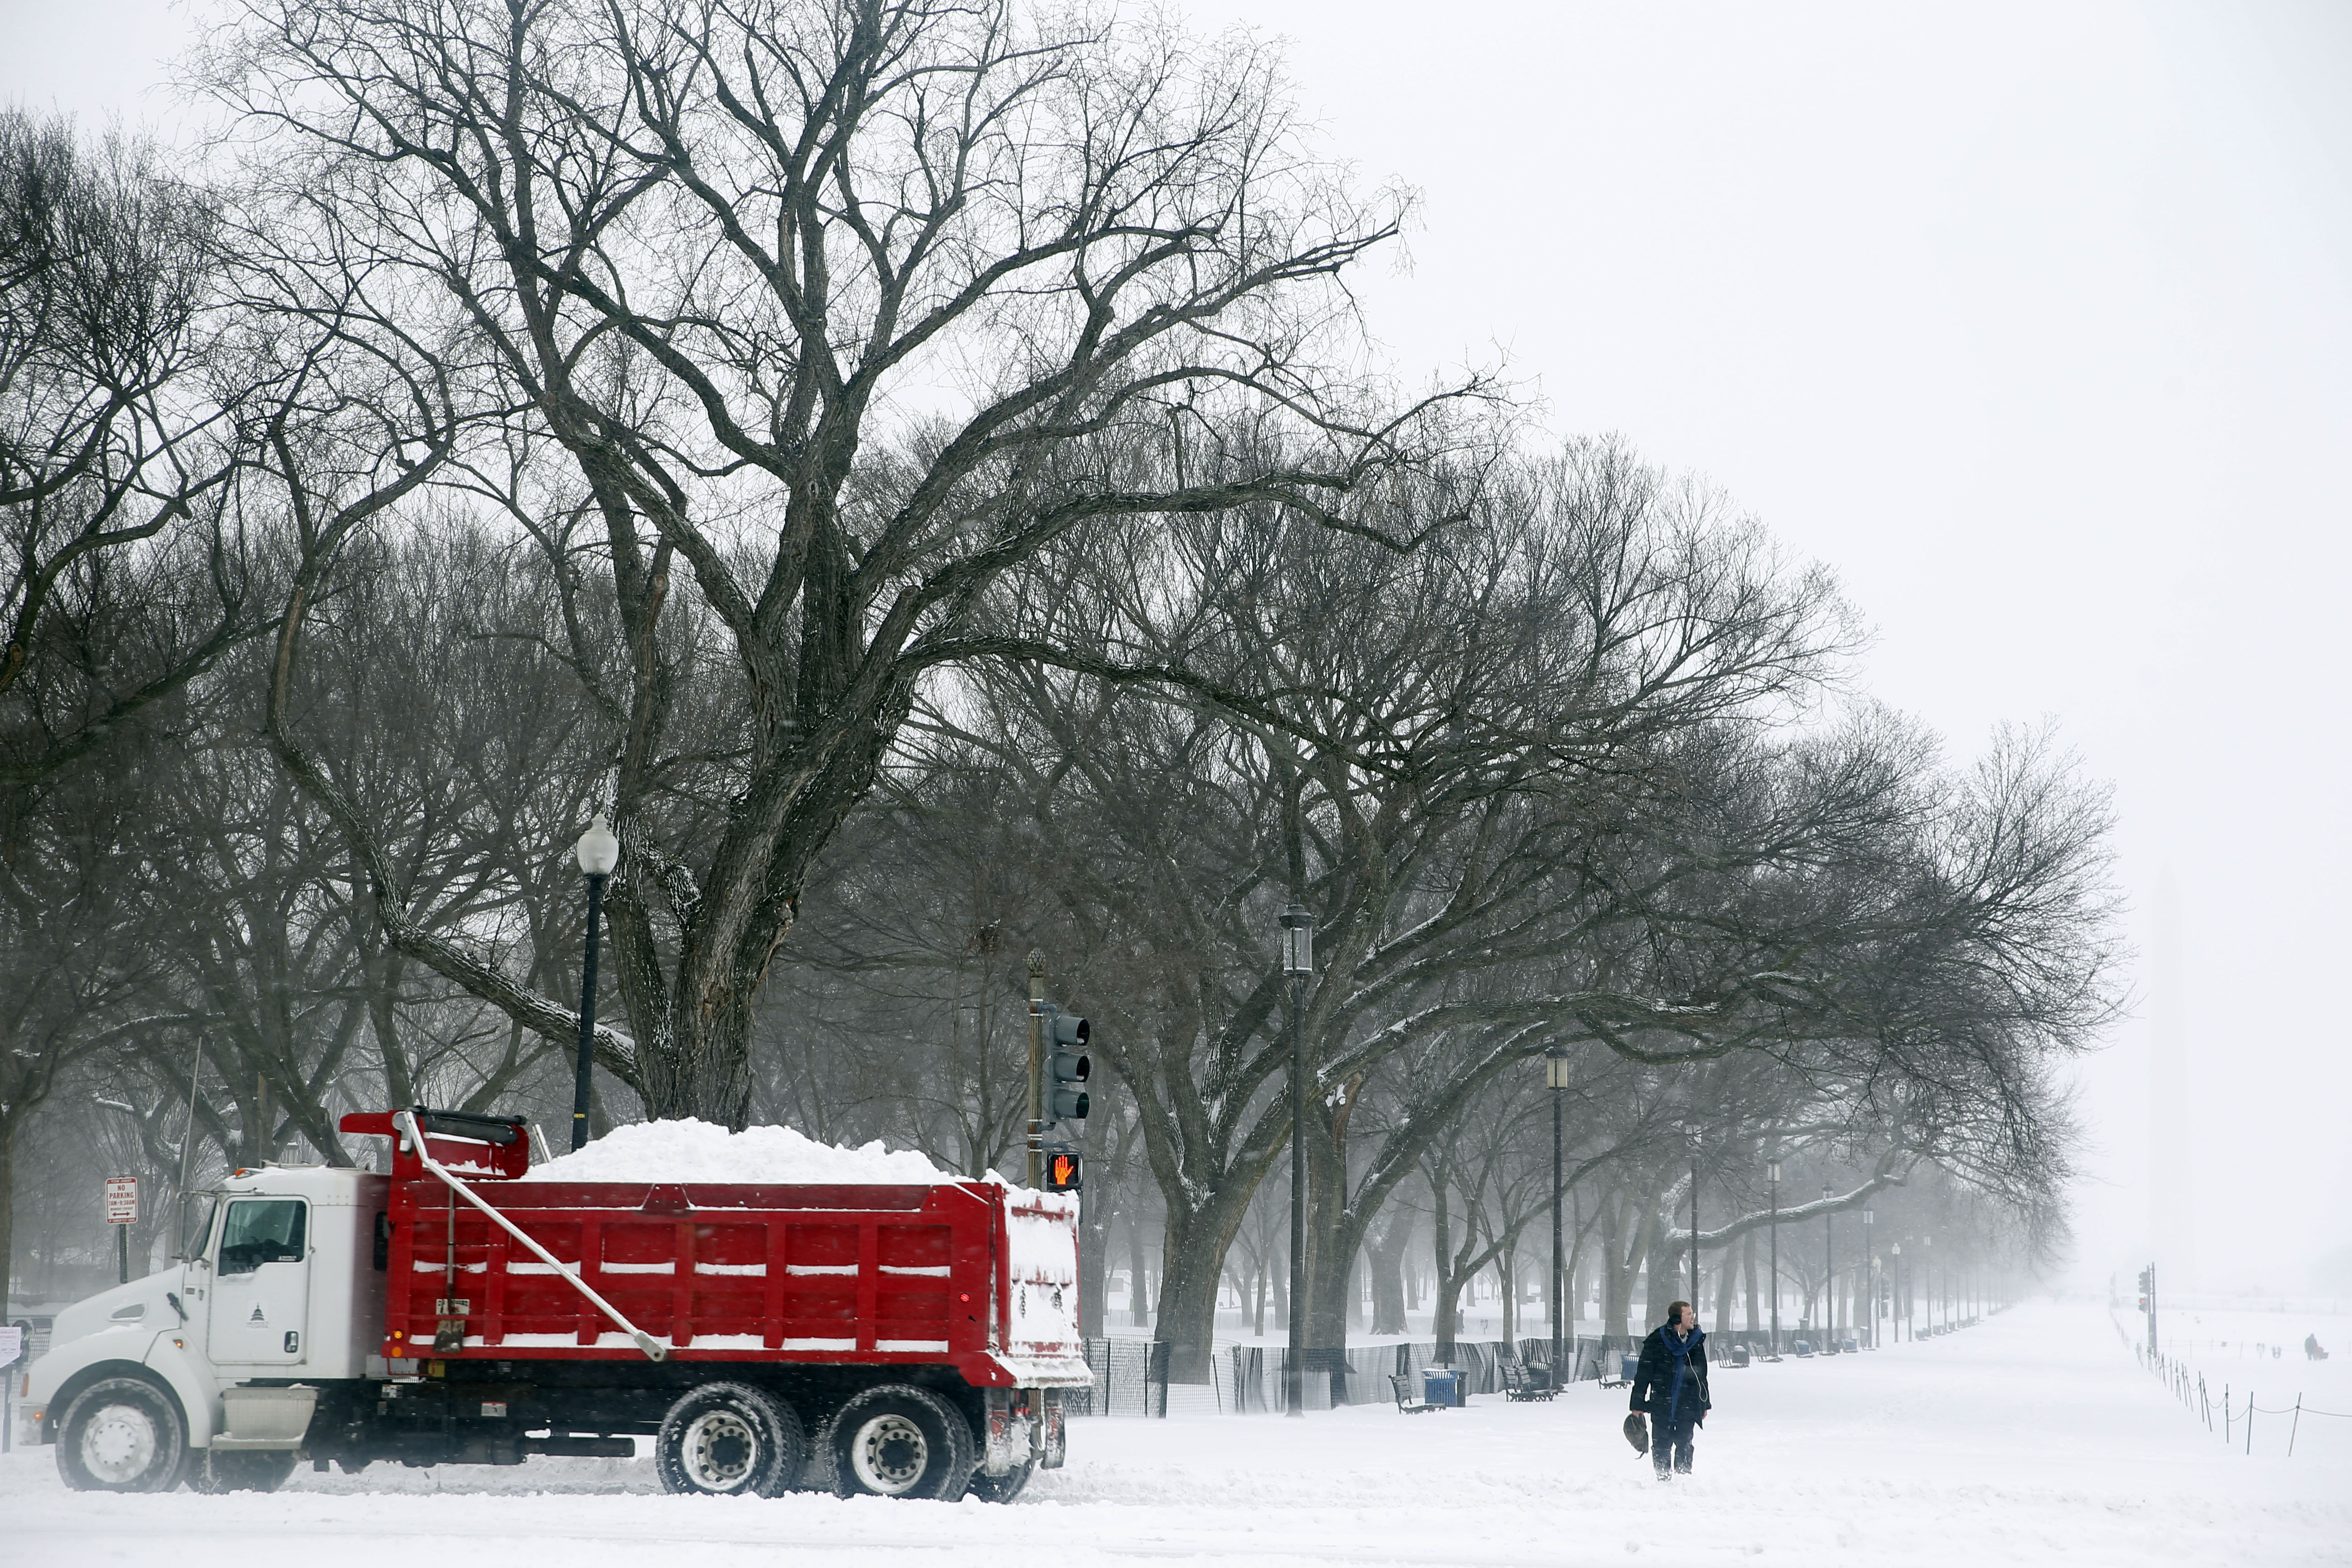 D.C., Maryland to get federal disaster funds for snowstorm recovery